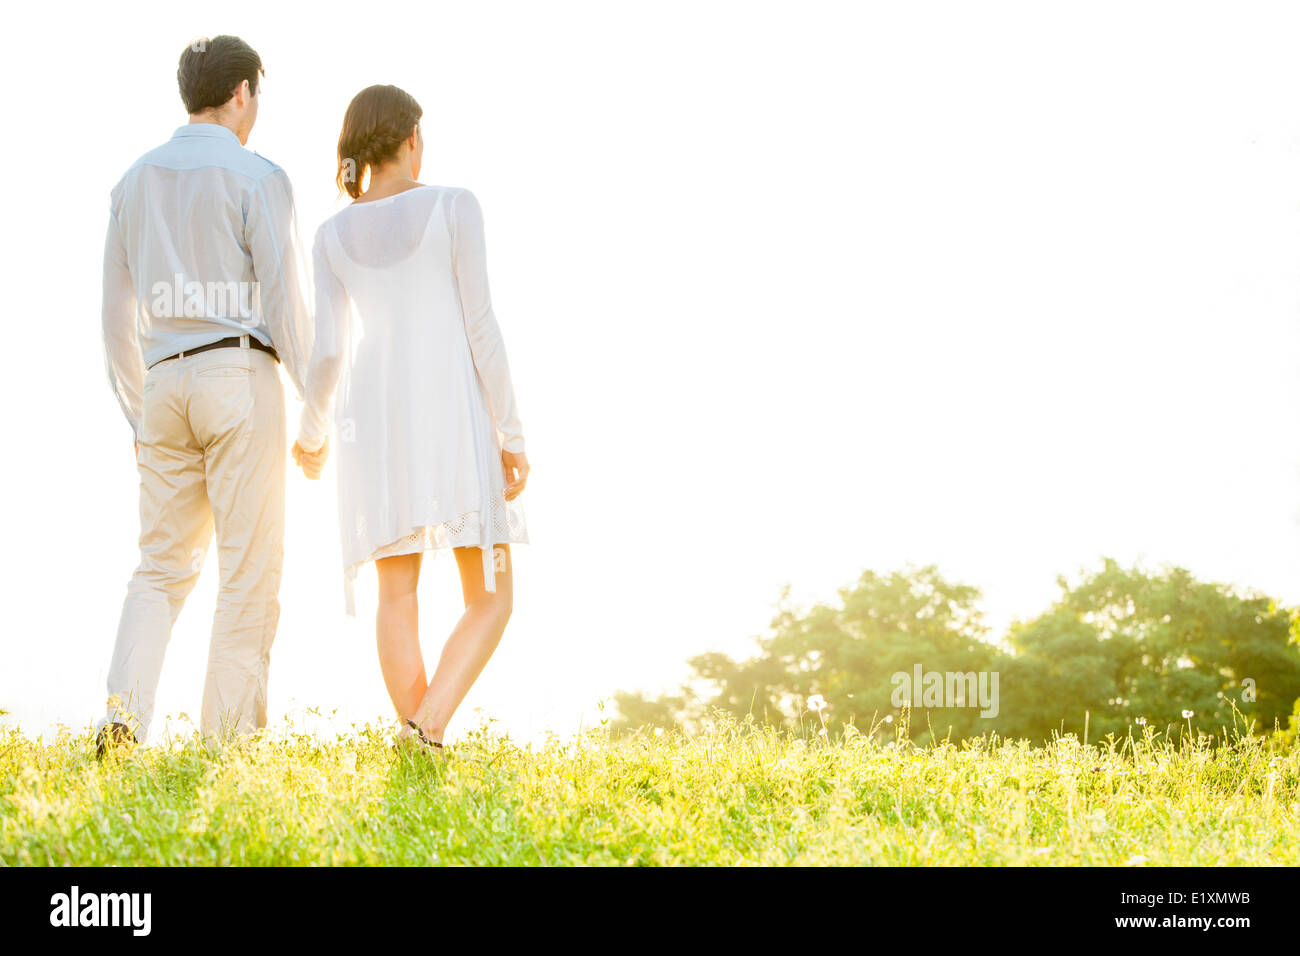 Rear view of young couple holding hands in park against clear sky - Stock Image